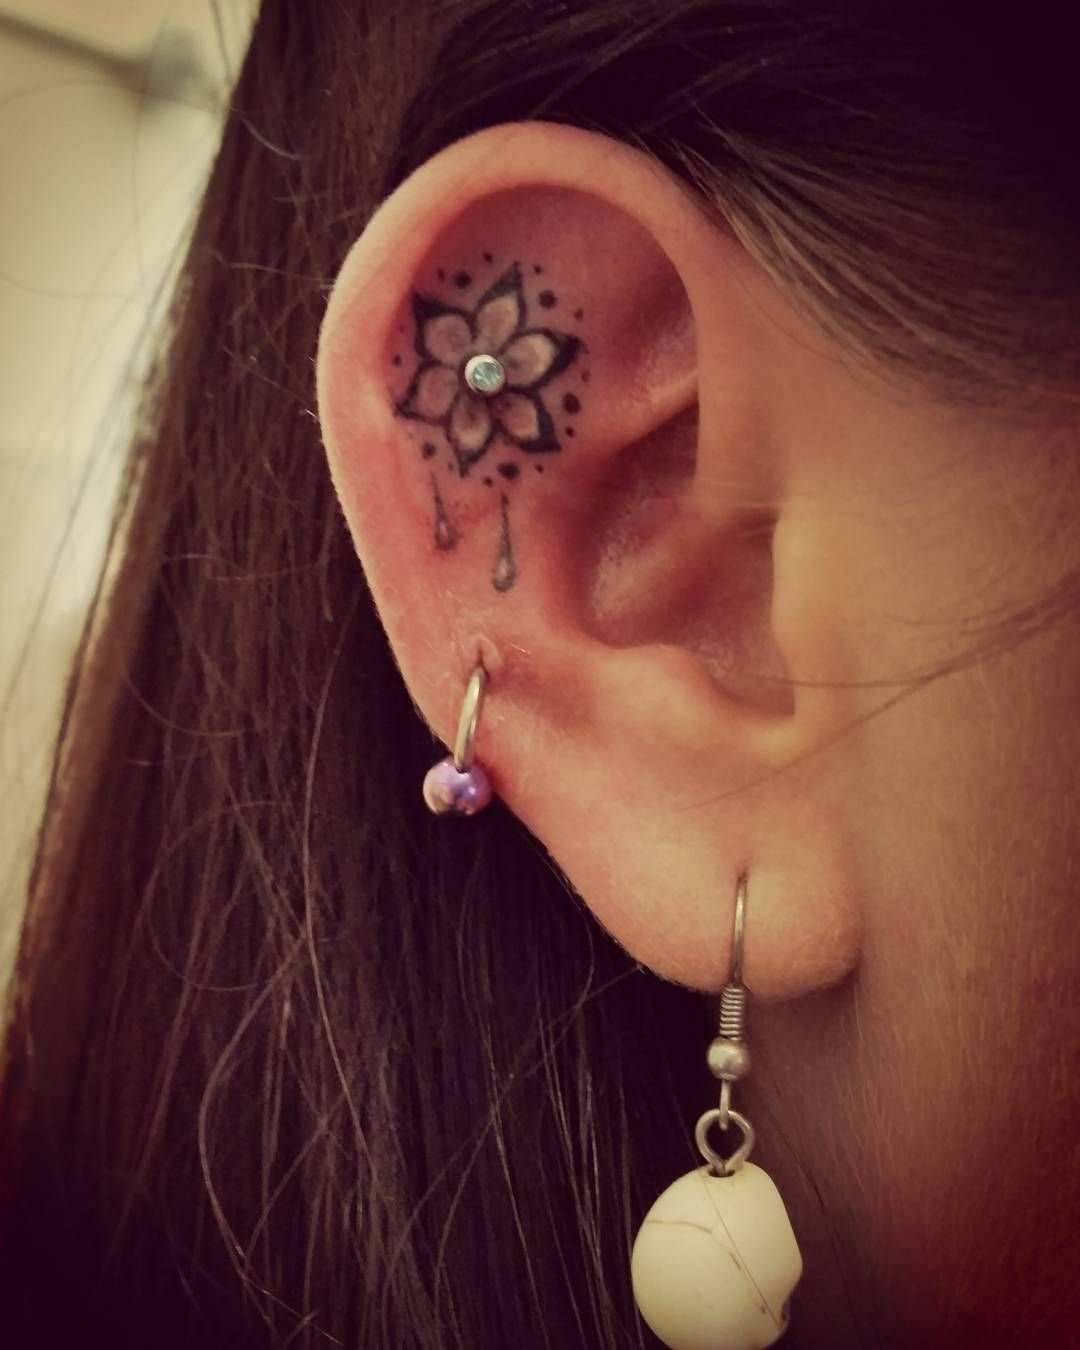 10 Fashionable Cute Piercing Ideas For Girls 23 tiny ear tattoos that are better than piercings tattoo woman 2021